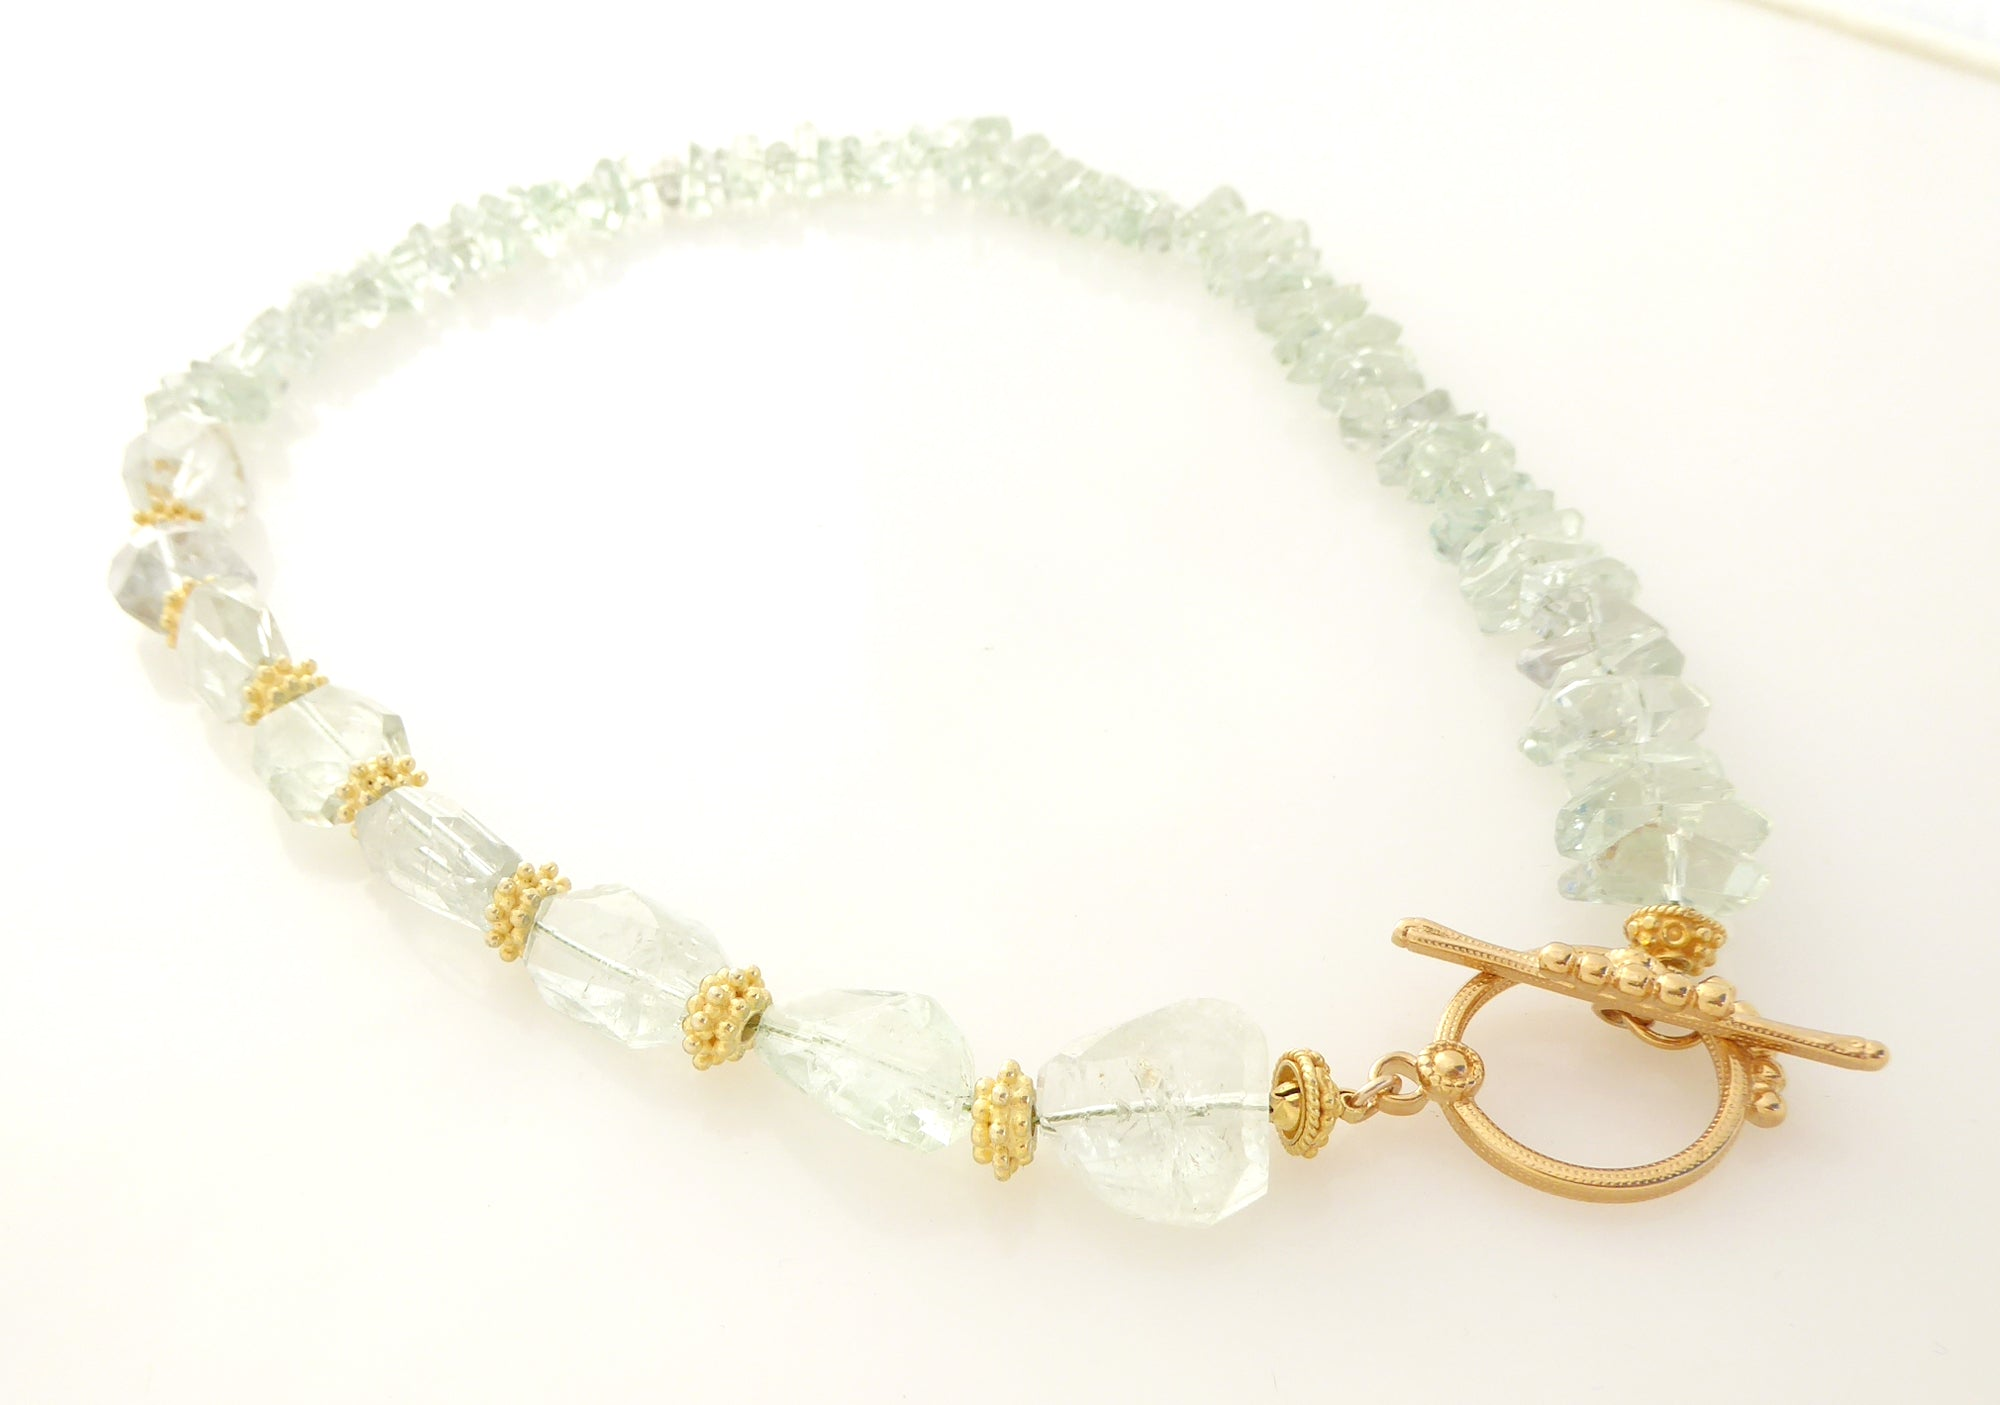 Green amethyst toggle necklace